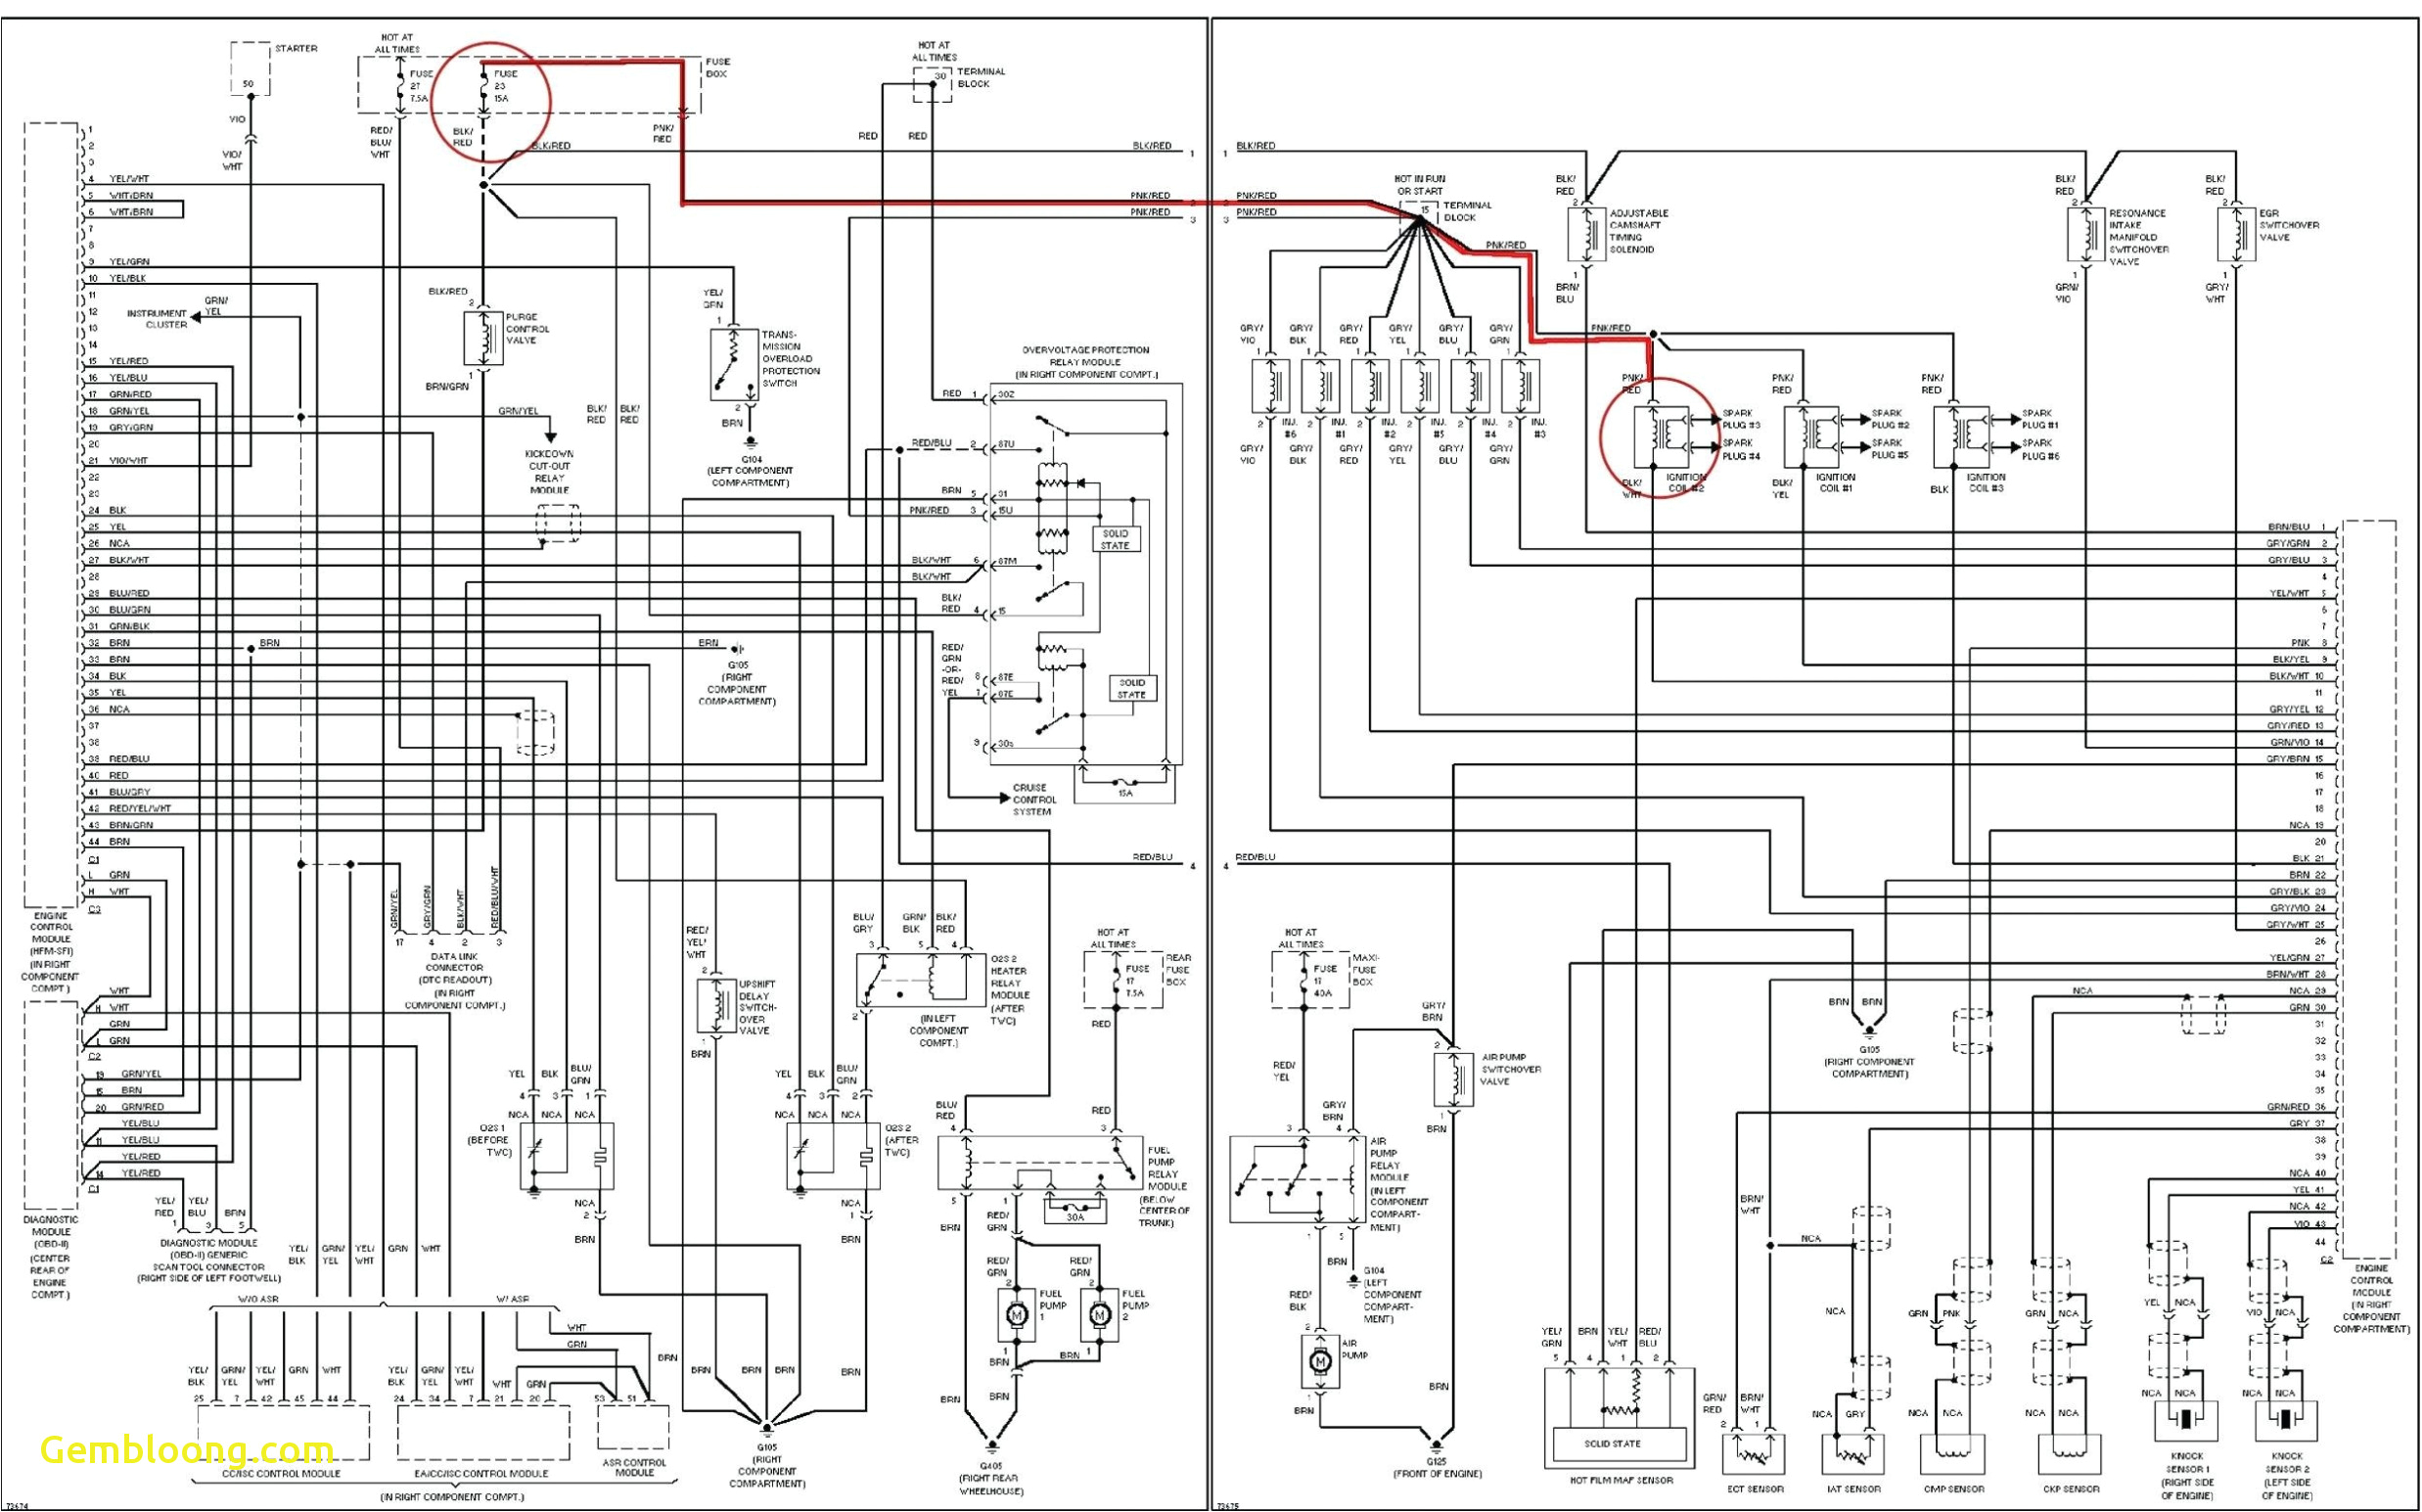 2001 mercedes slk k40 relay diagram in addition mercedes benz 1995slk 320 wiring diagram wiring diagram